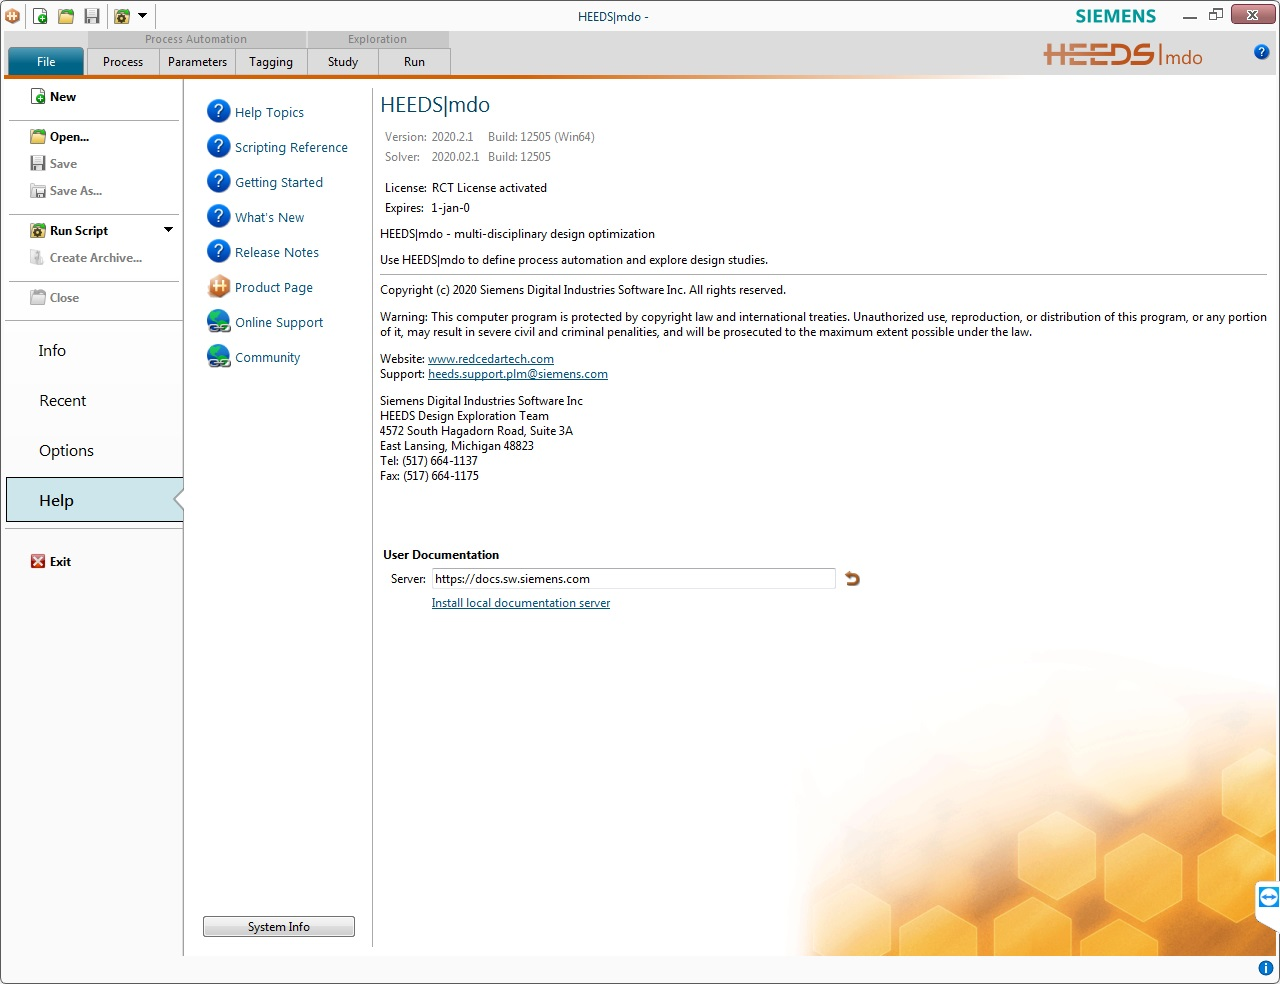 Working with Siemens HEEDS MDO 2020.2.1 full license